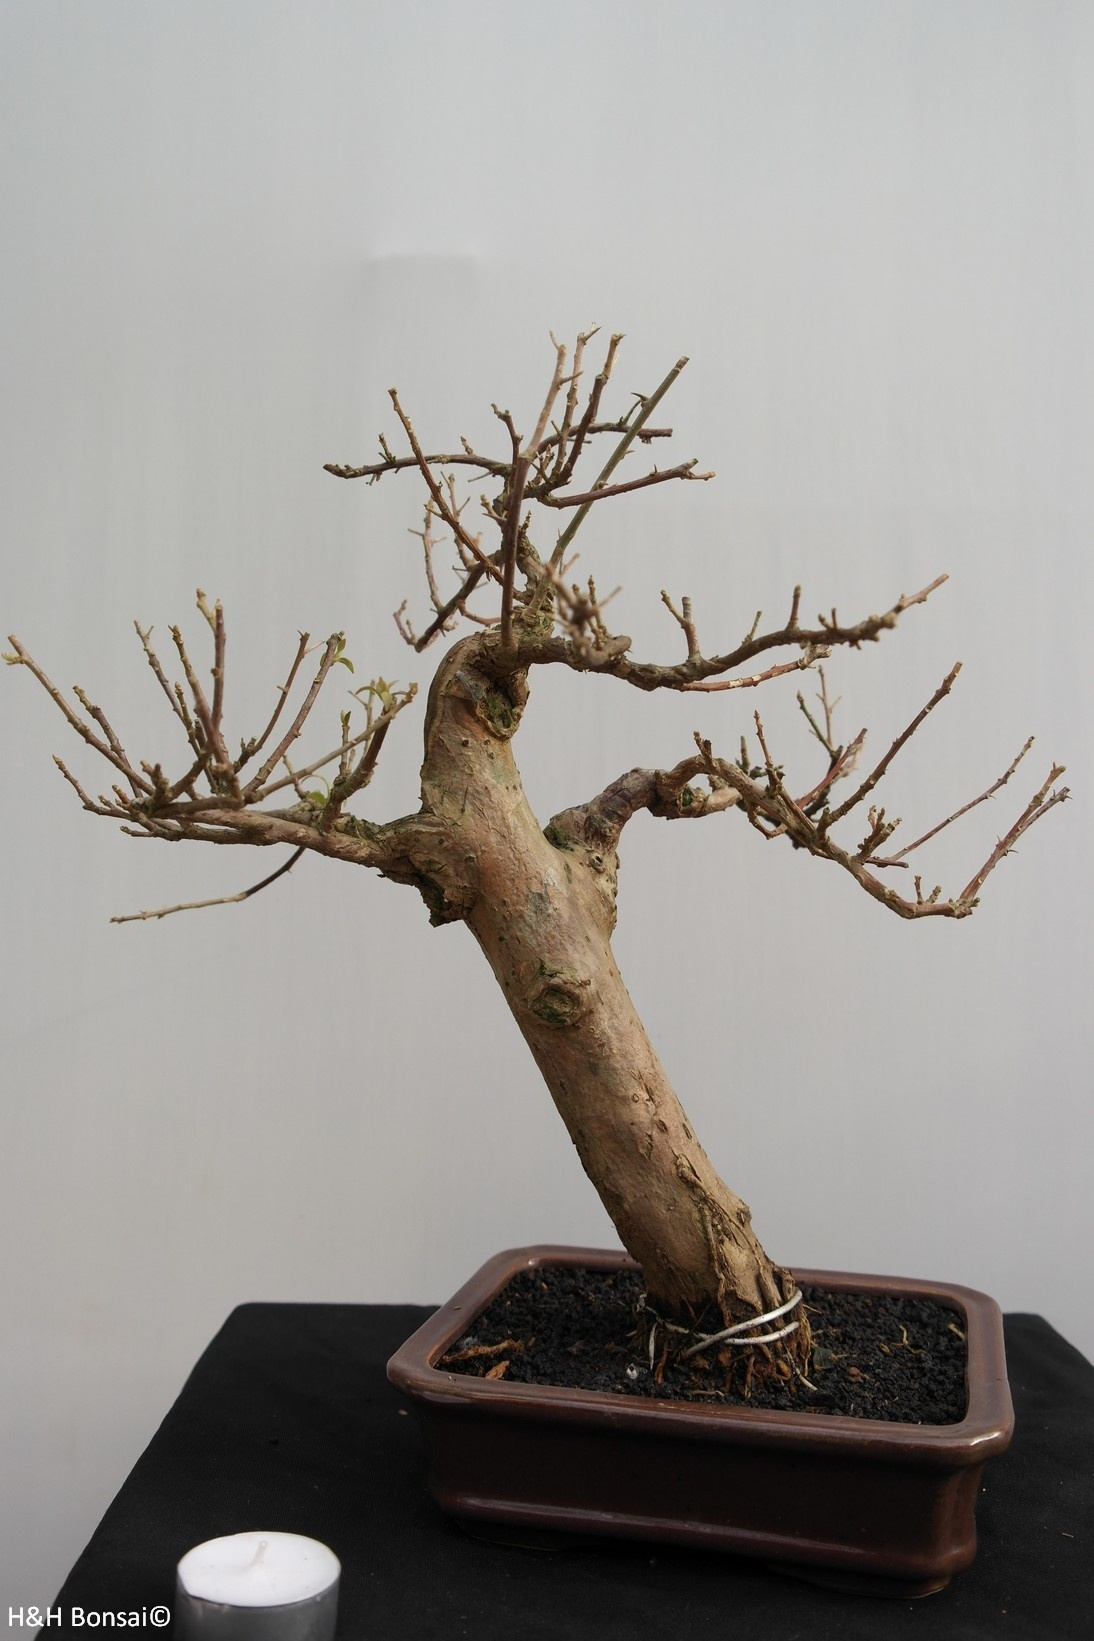 Bonsai Bougainvillea glabra, no. 7818